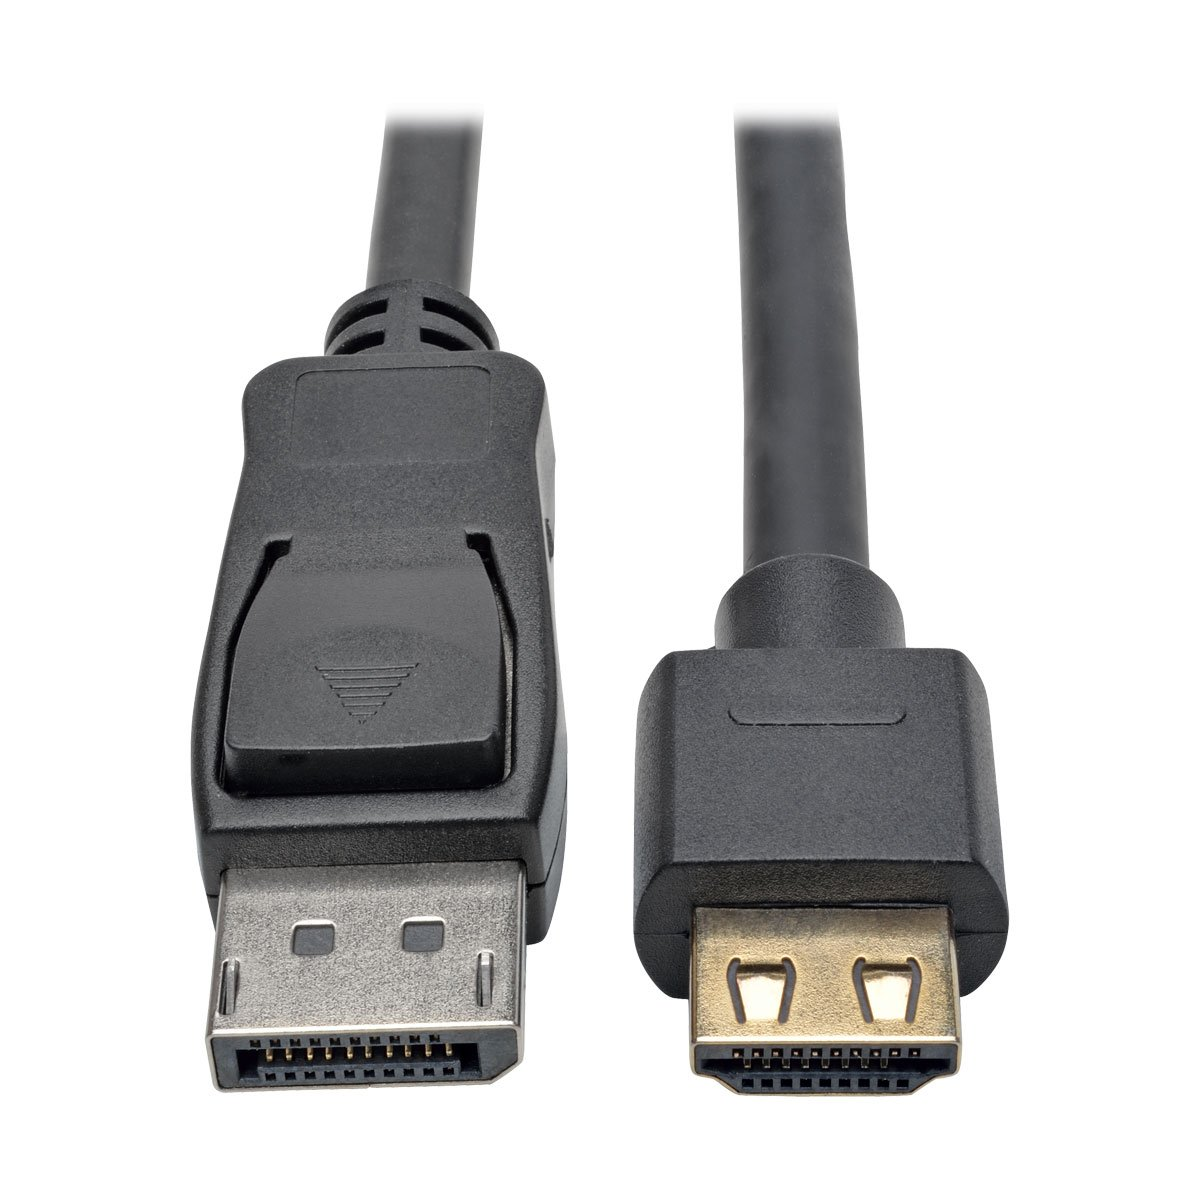 Tripp Lite DisplayPort 1.2a to HDMI Adapter Cable, Active with Gripping HDMI Plug M/M DP 4K, 20' (P582-020-HD-V2A)